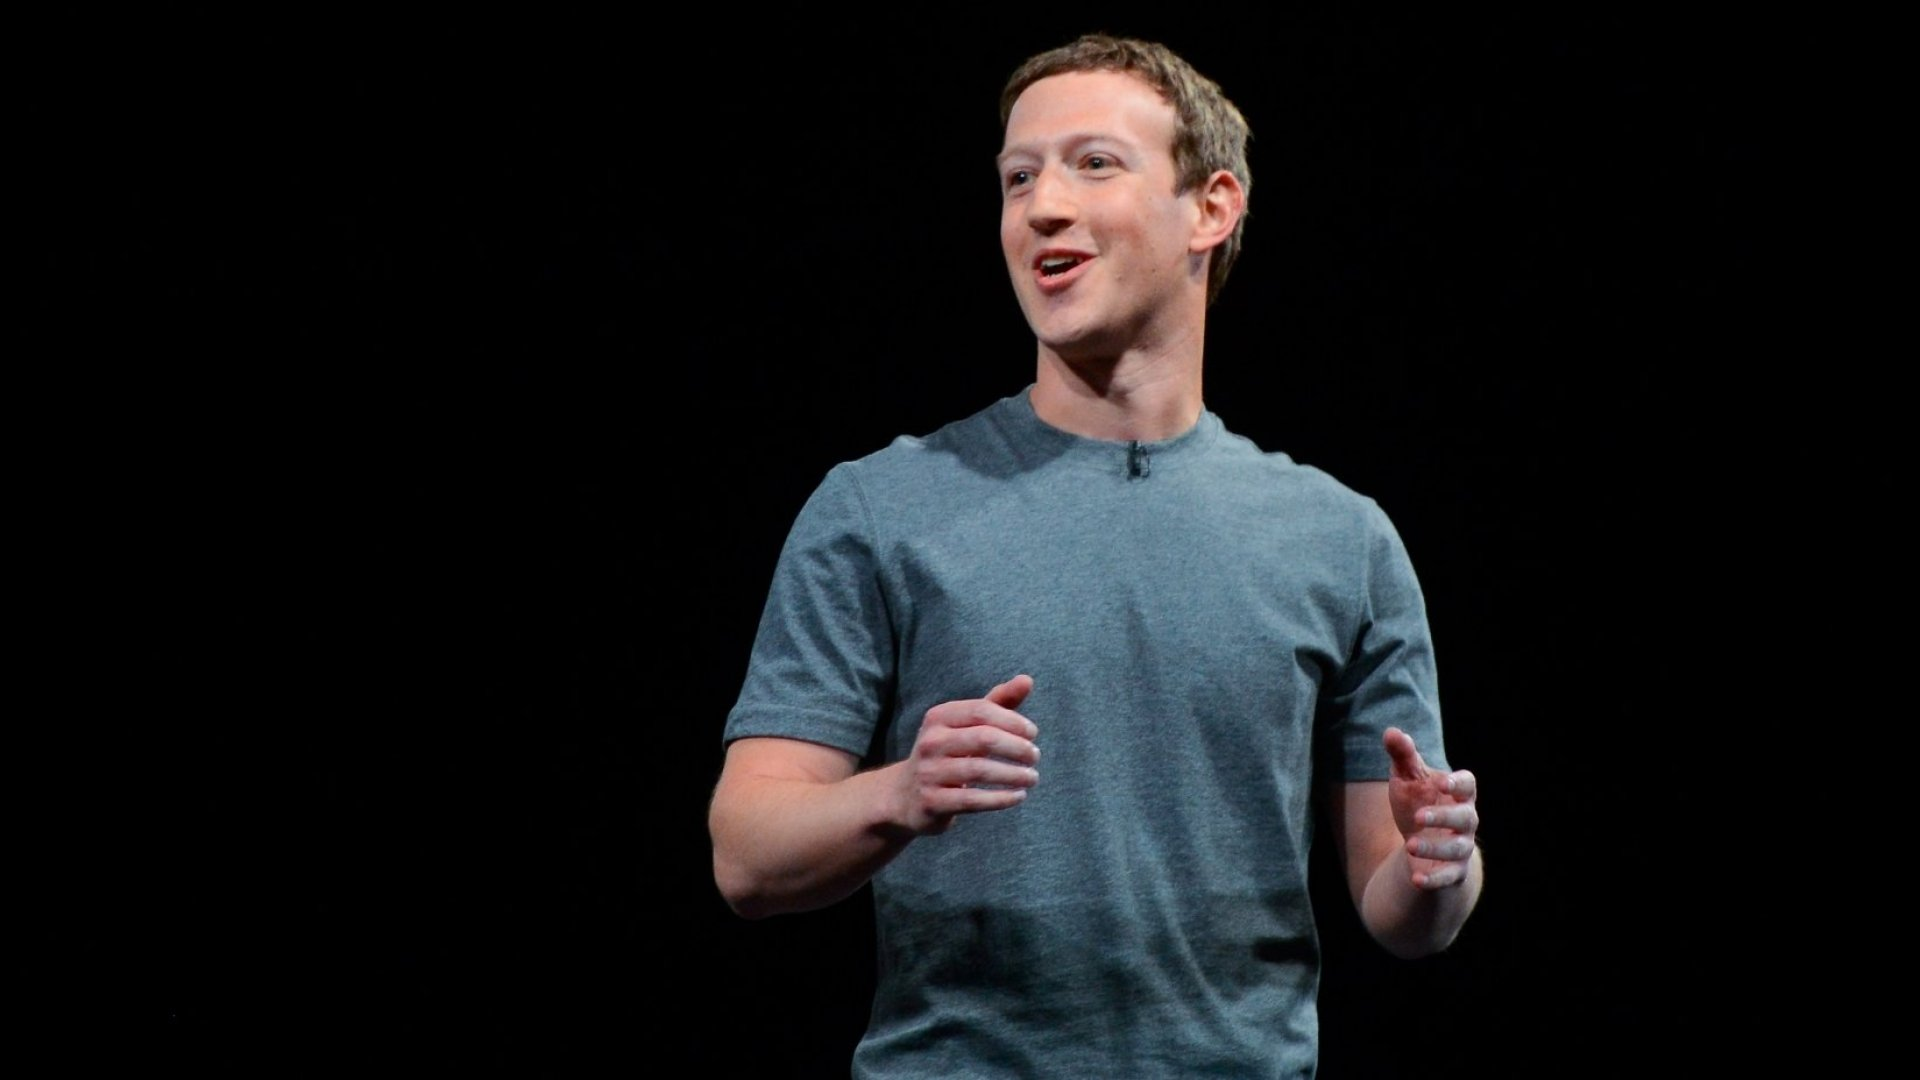 The Savvy Stock Move Mark Zuckerberg's Using to Keep a Grip on Facebook